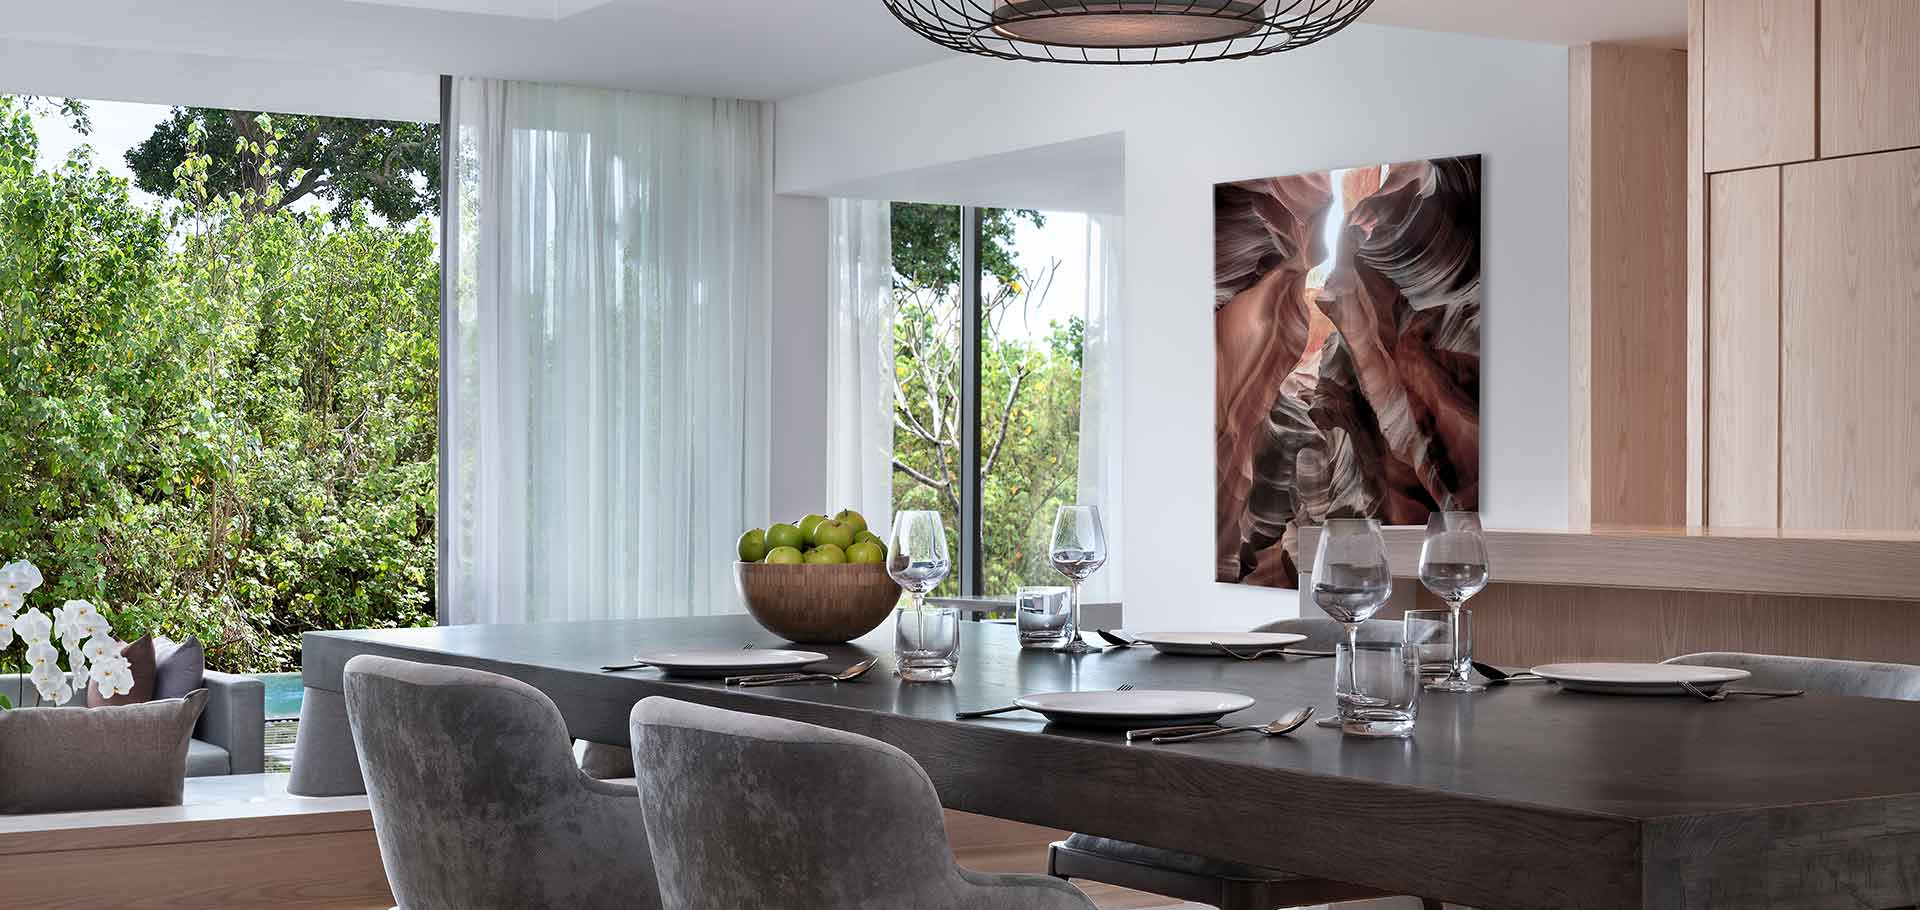 Anantara_Desaru_Coast_Residences_Dining_Room_2